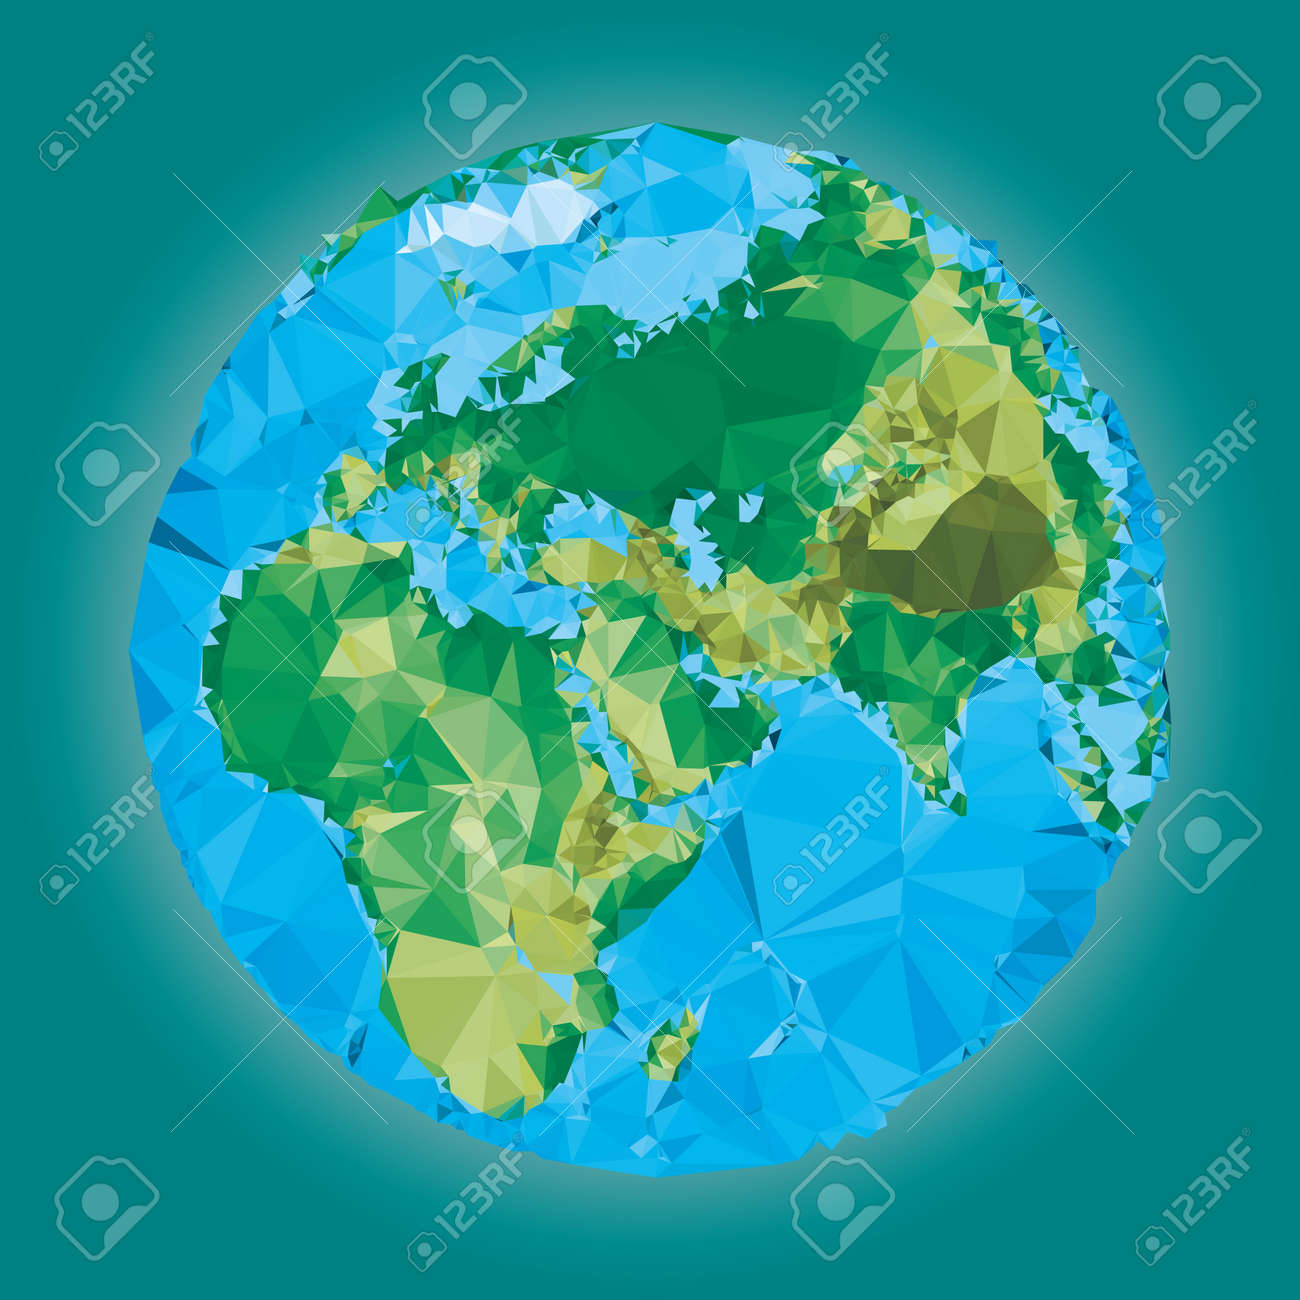 Earth world map low poly vector illustration royalty free cliparts earth world map low poly vector illustration stock vector 38167879 gumiabroncs Images